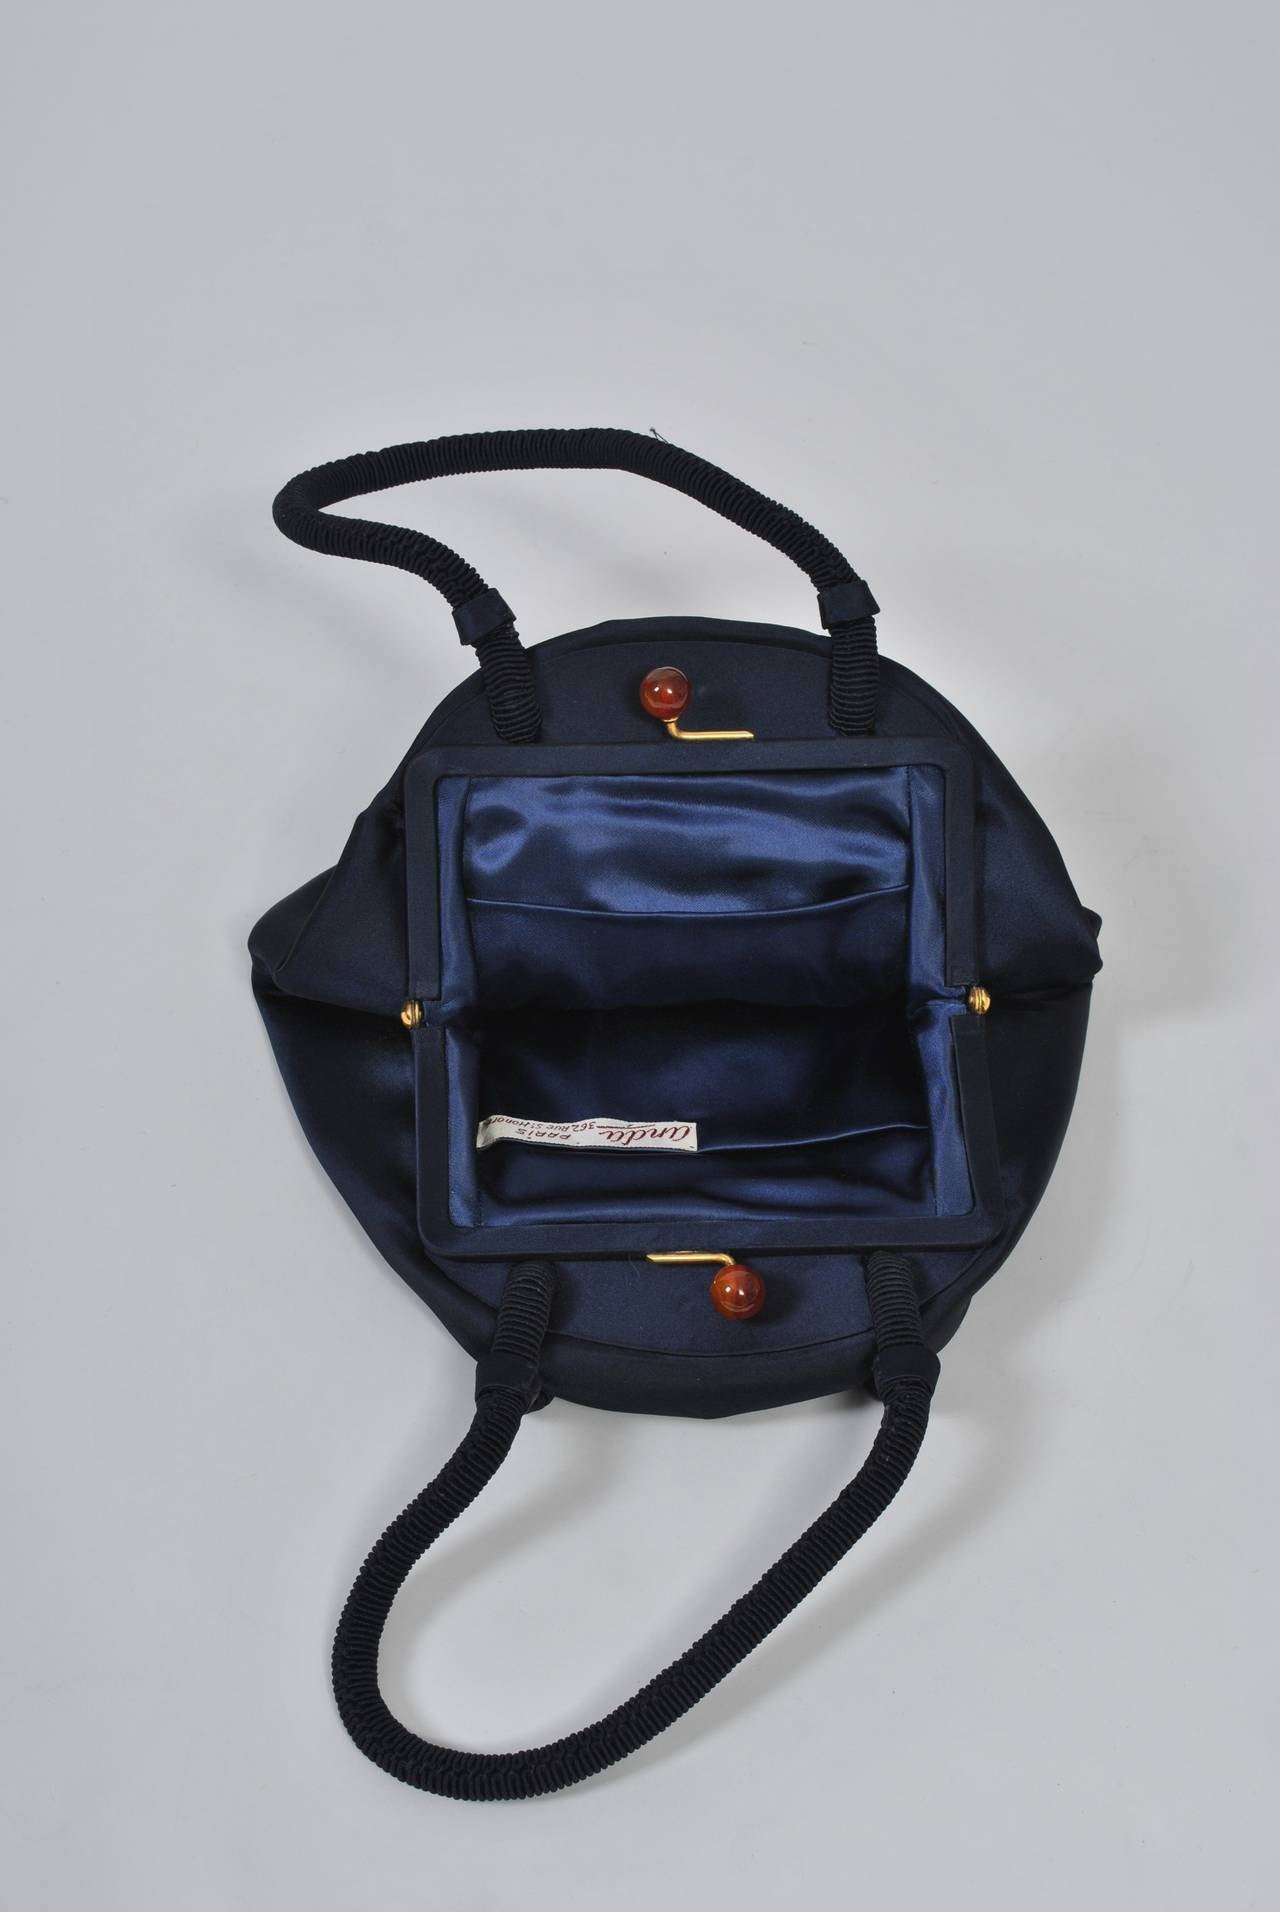 Navy Satin Purse with Tortoise Kiss Clasp, Paris 8